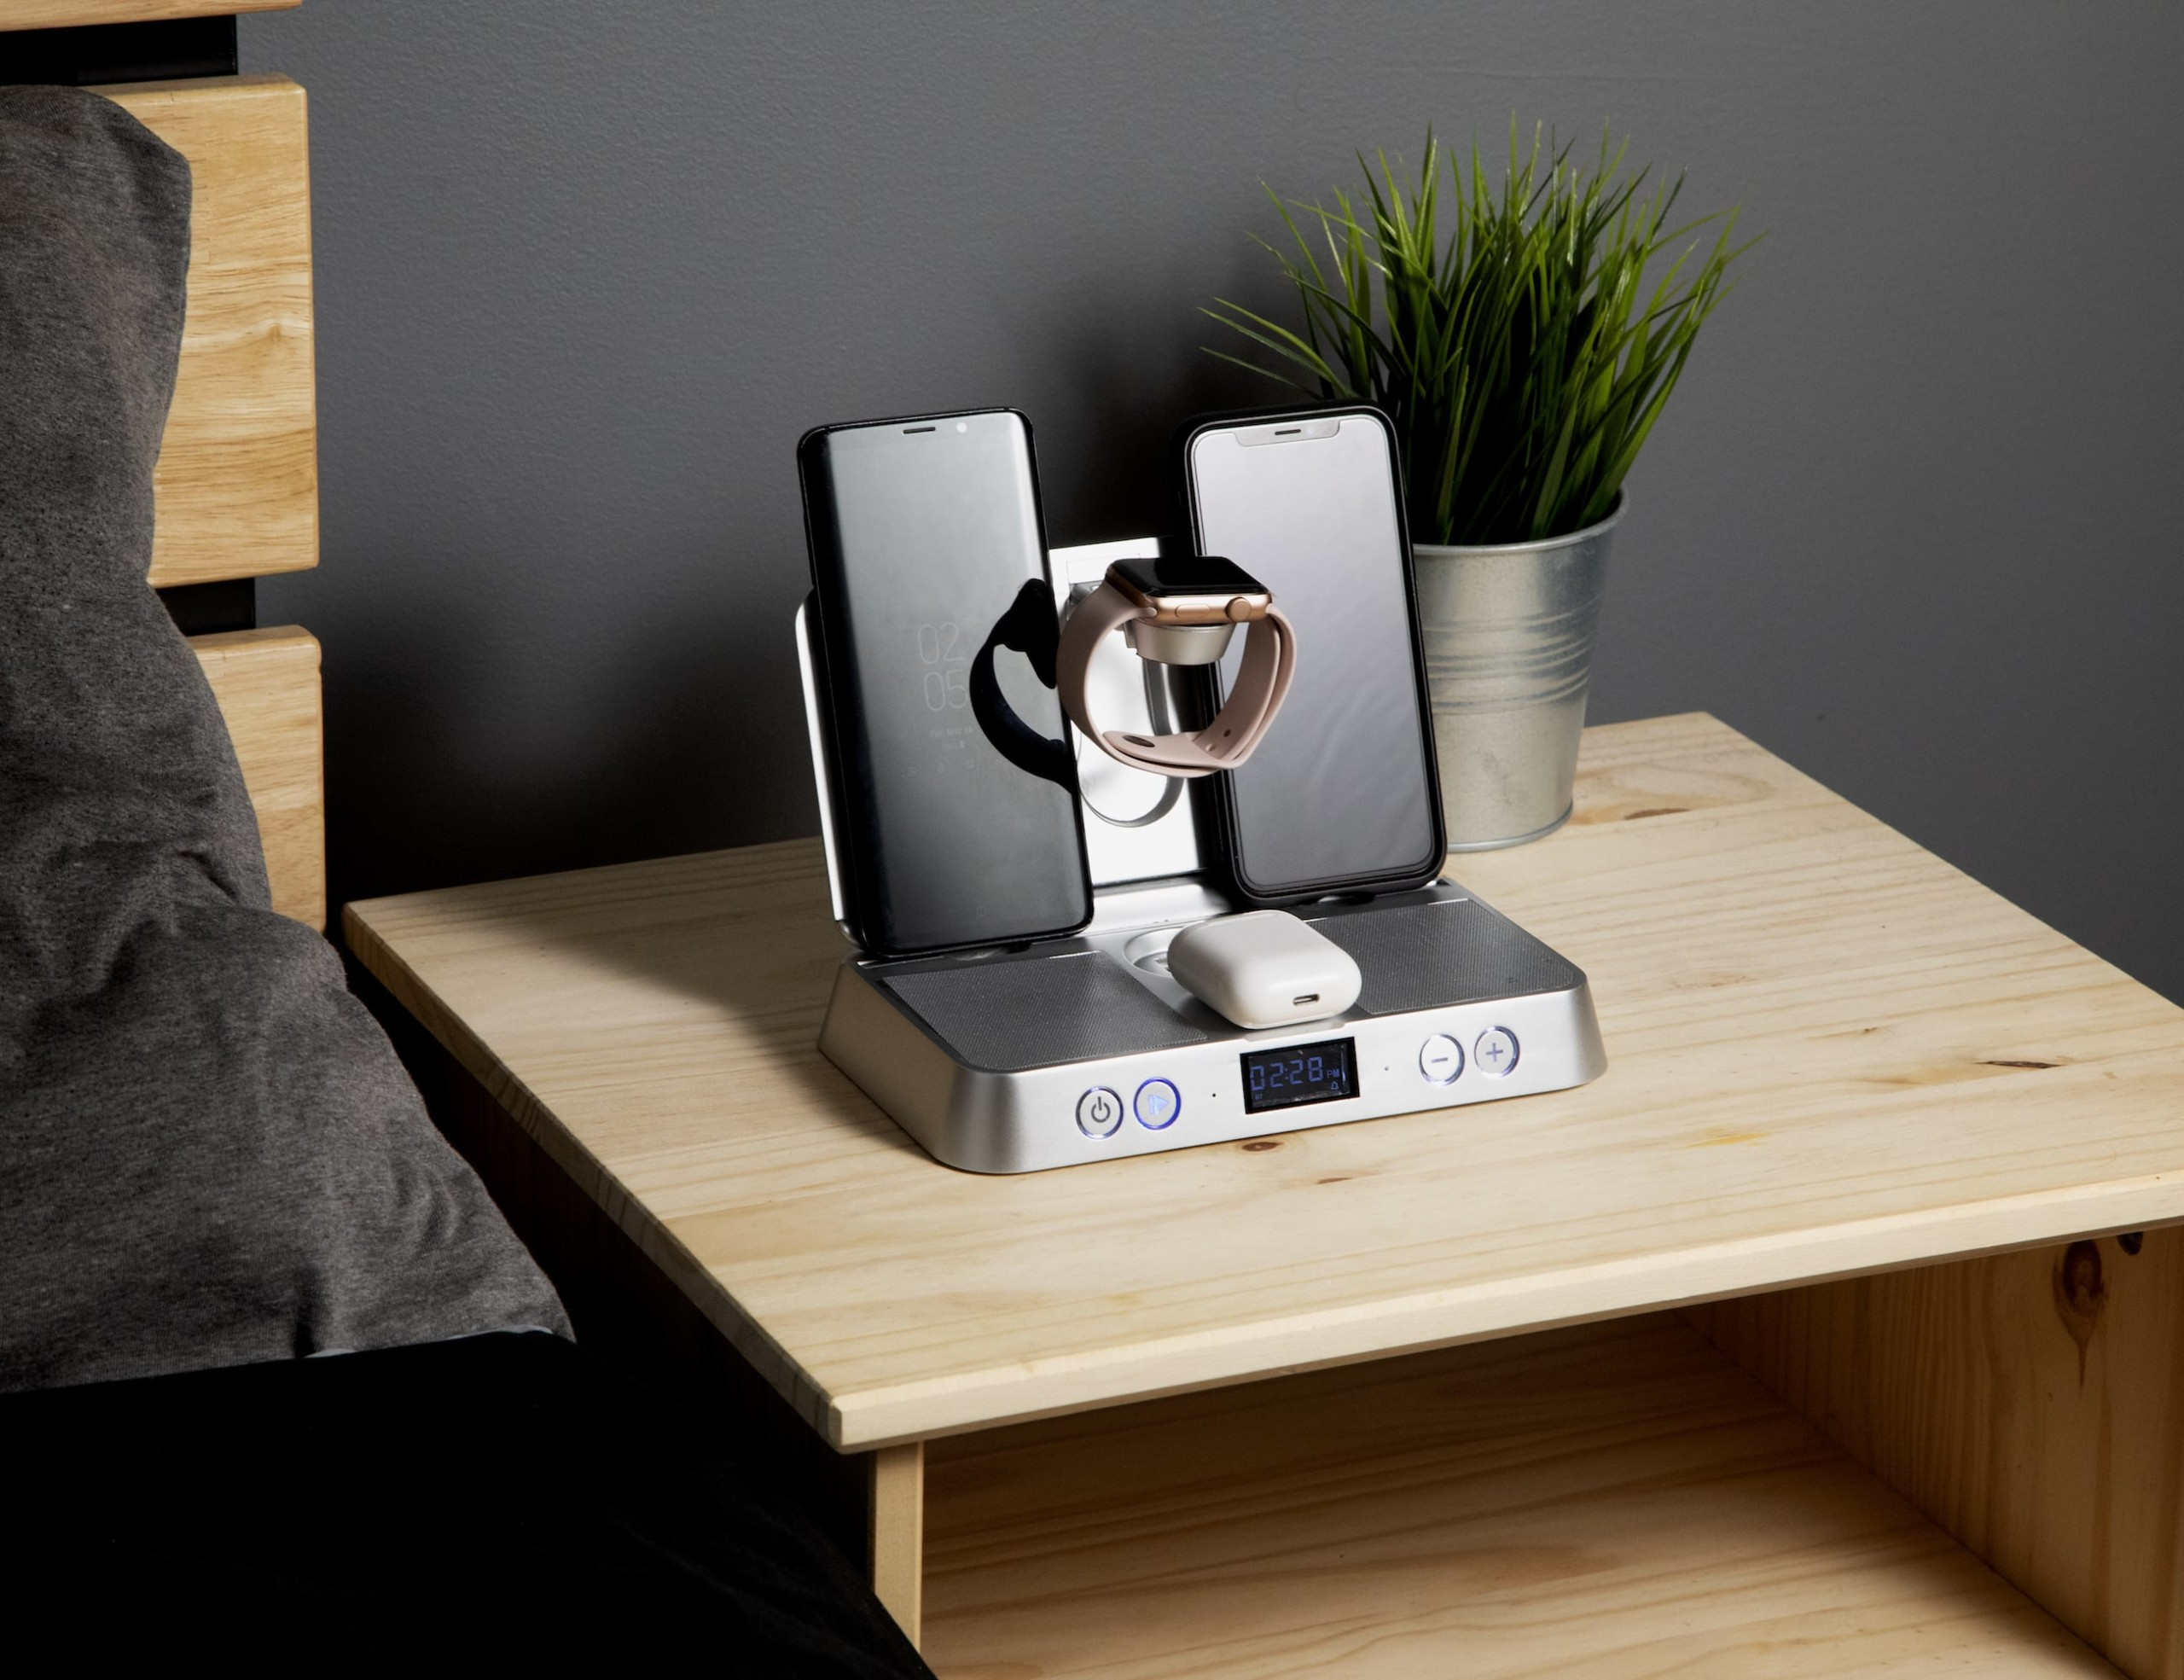 iQonAir Universal Wireless Bedside Charger cleans up your nightstand